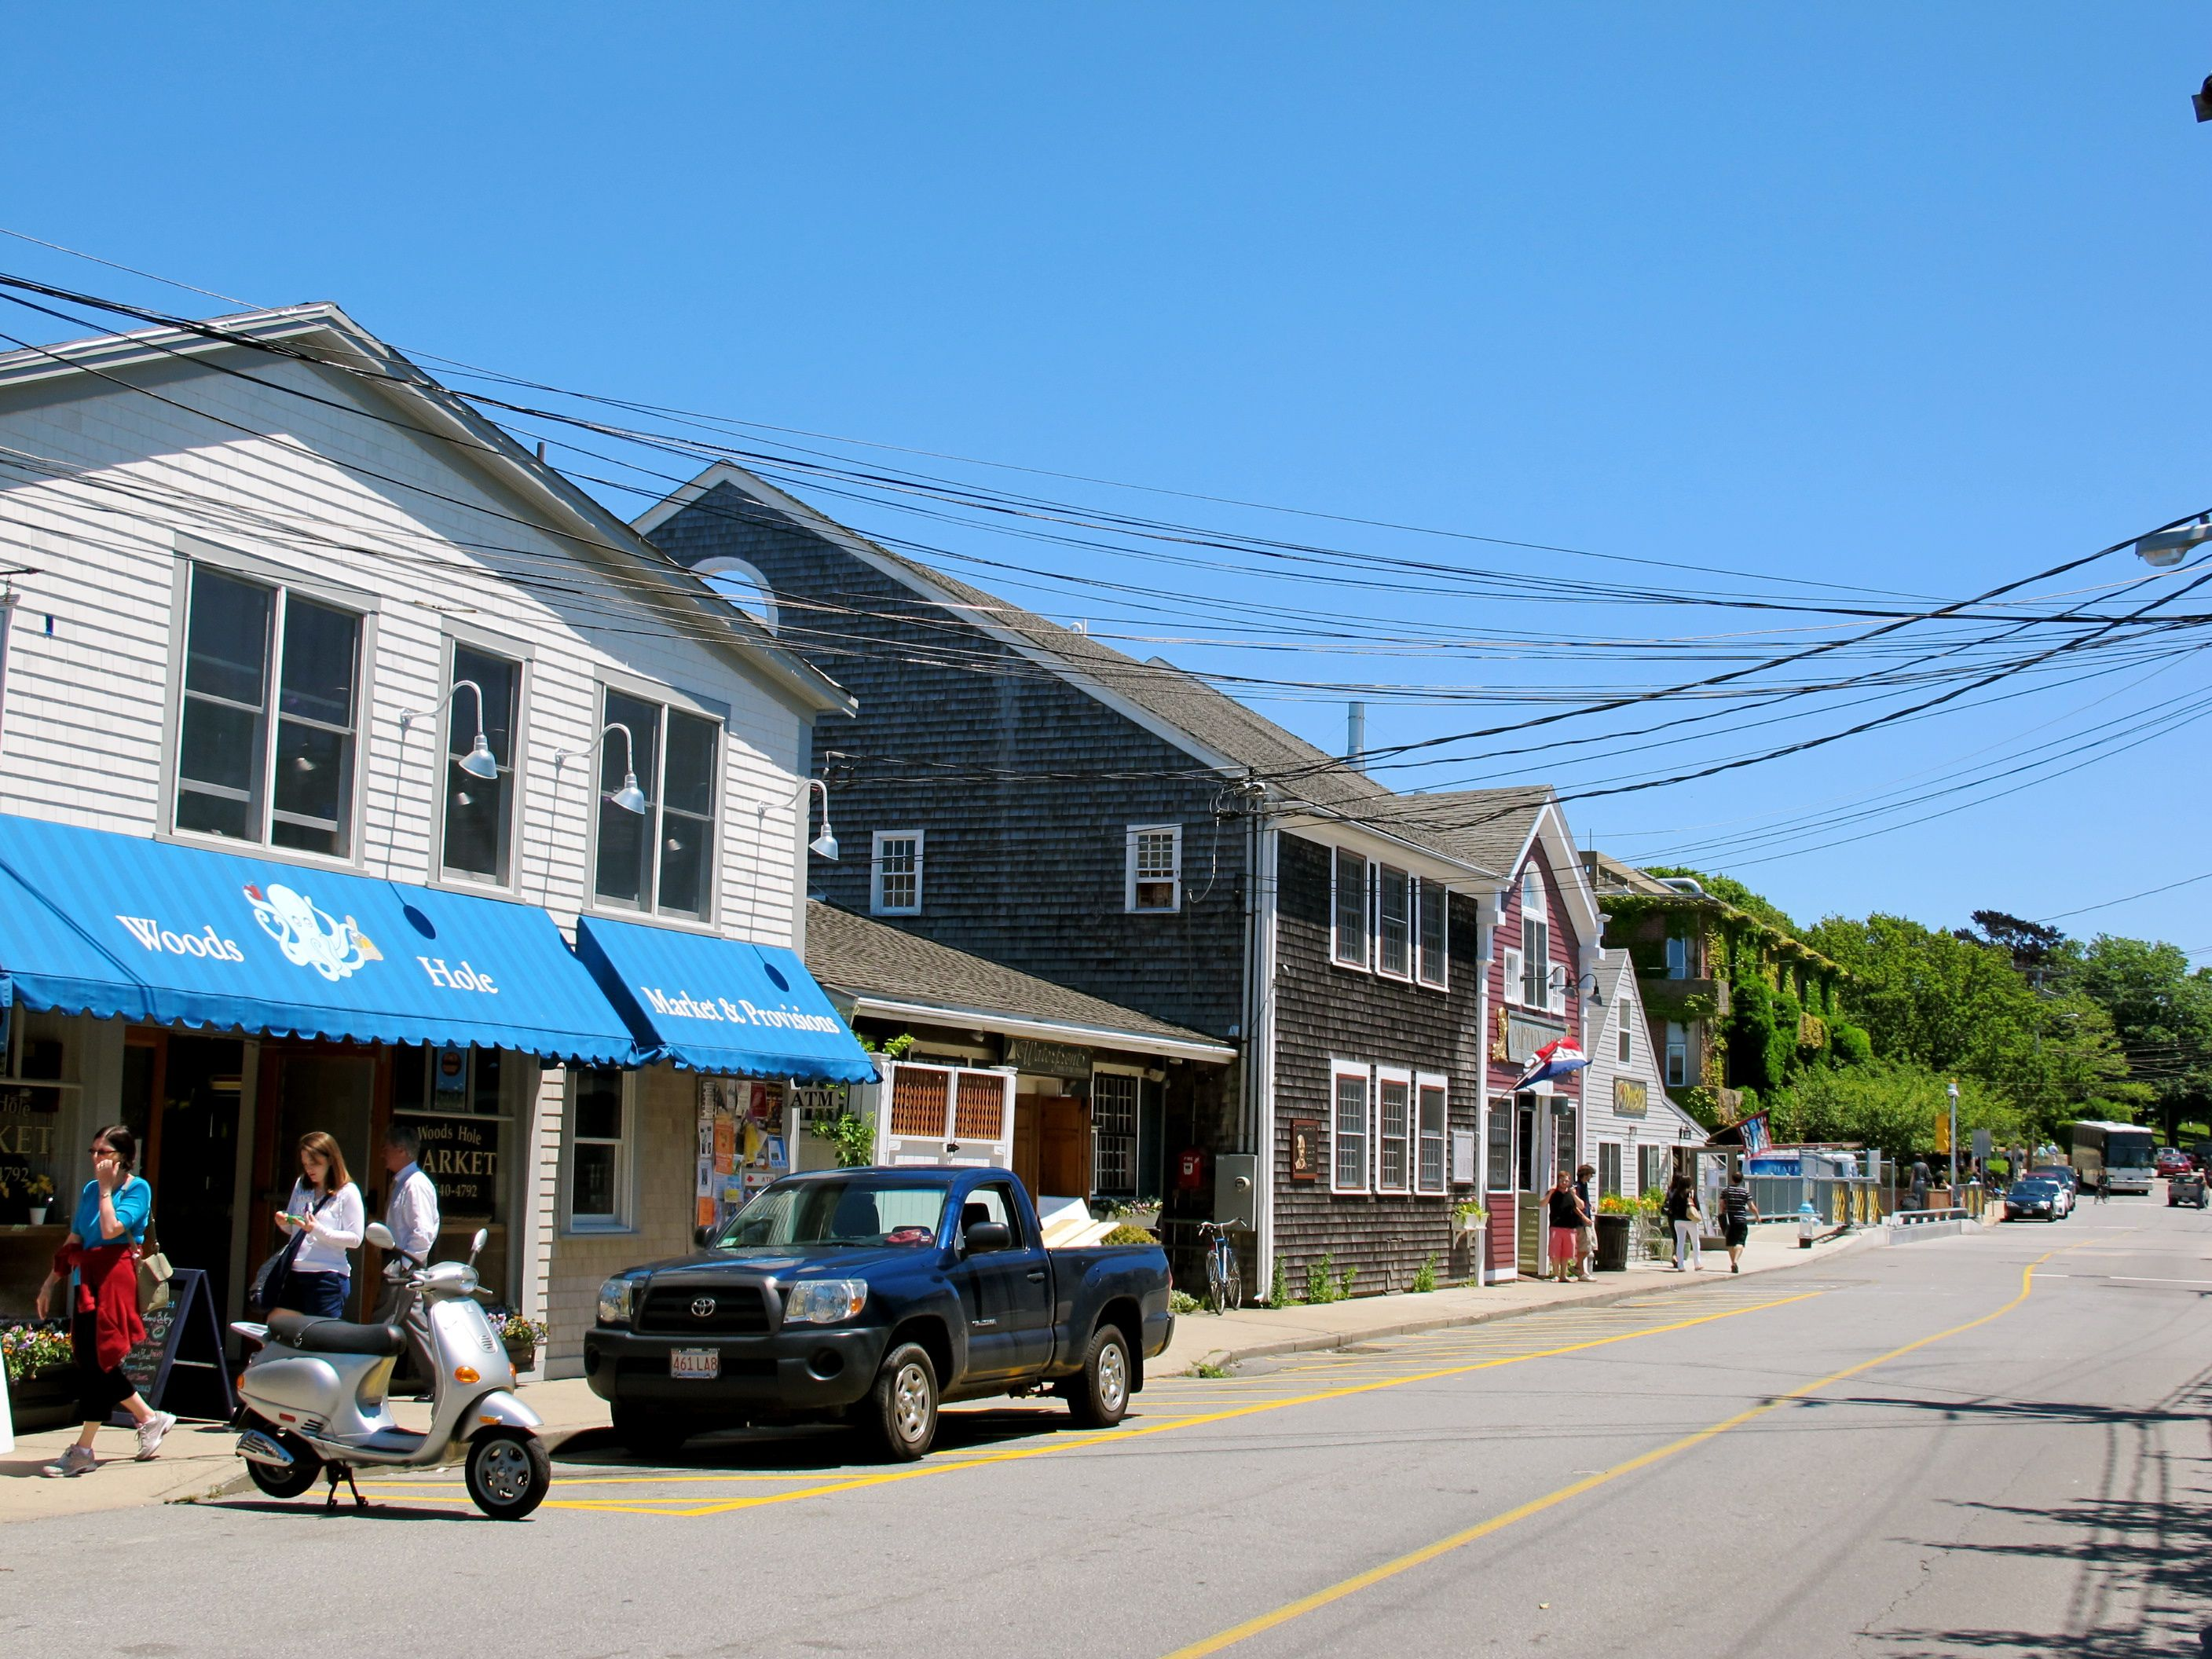 One of the quieter June mornings here in Woods Hole.